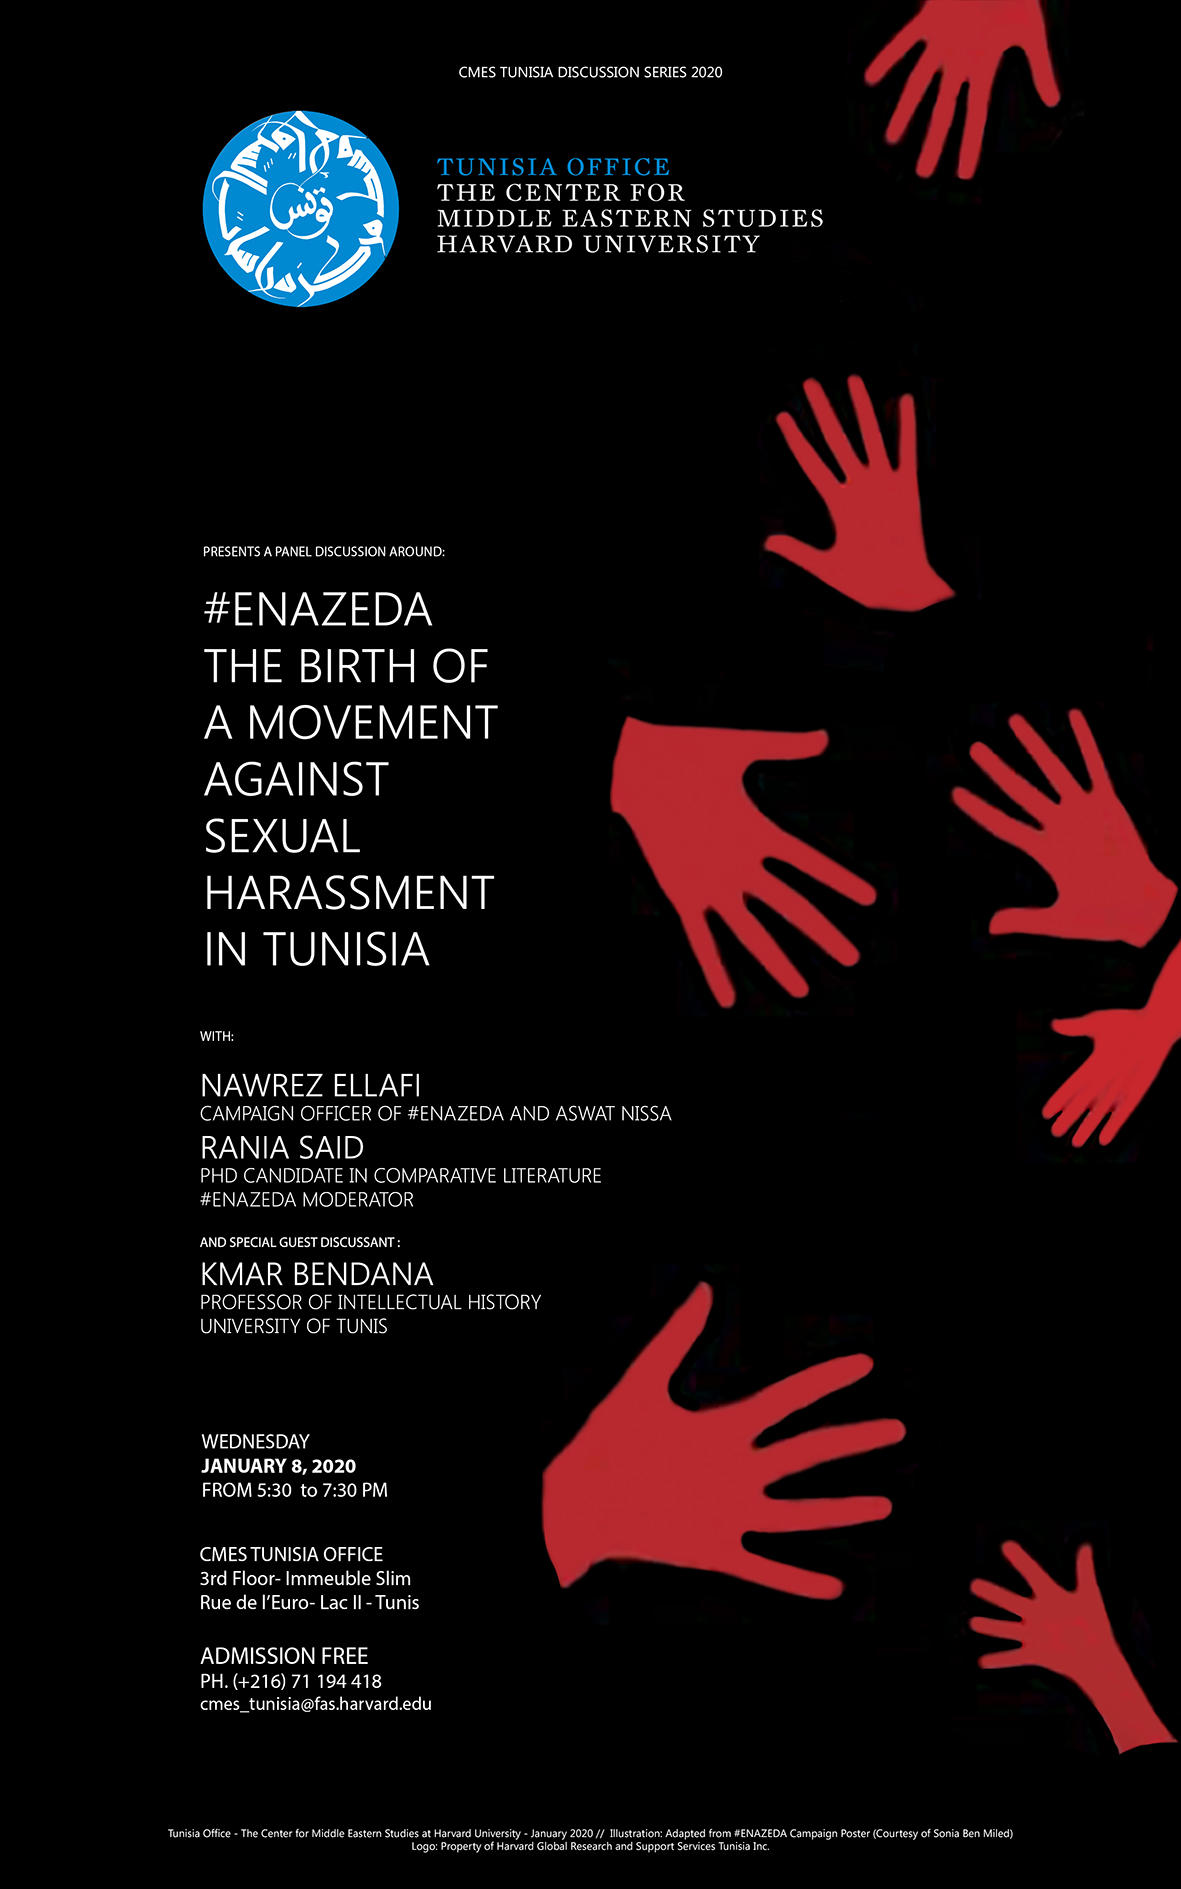 ena_zeda-panel_discussion-affiche-_jan_8-2020